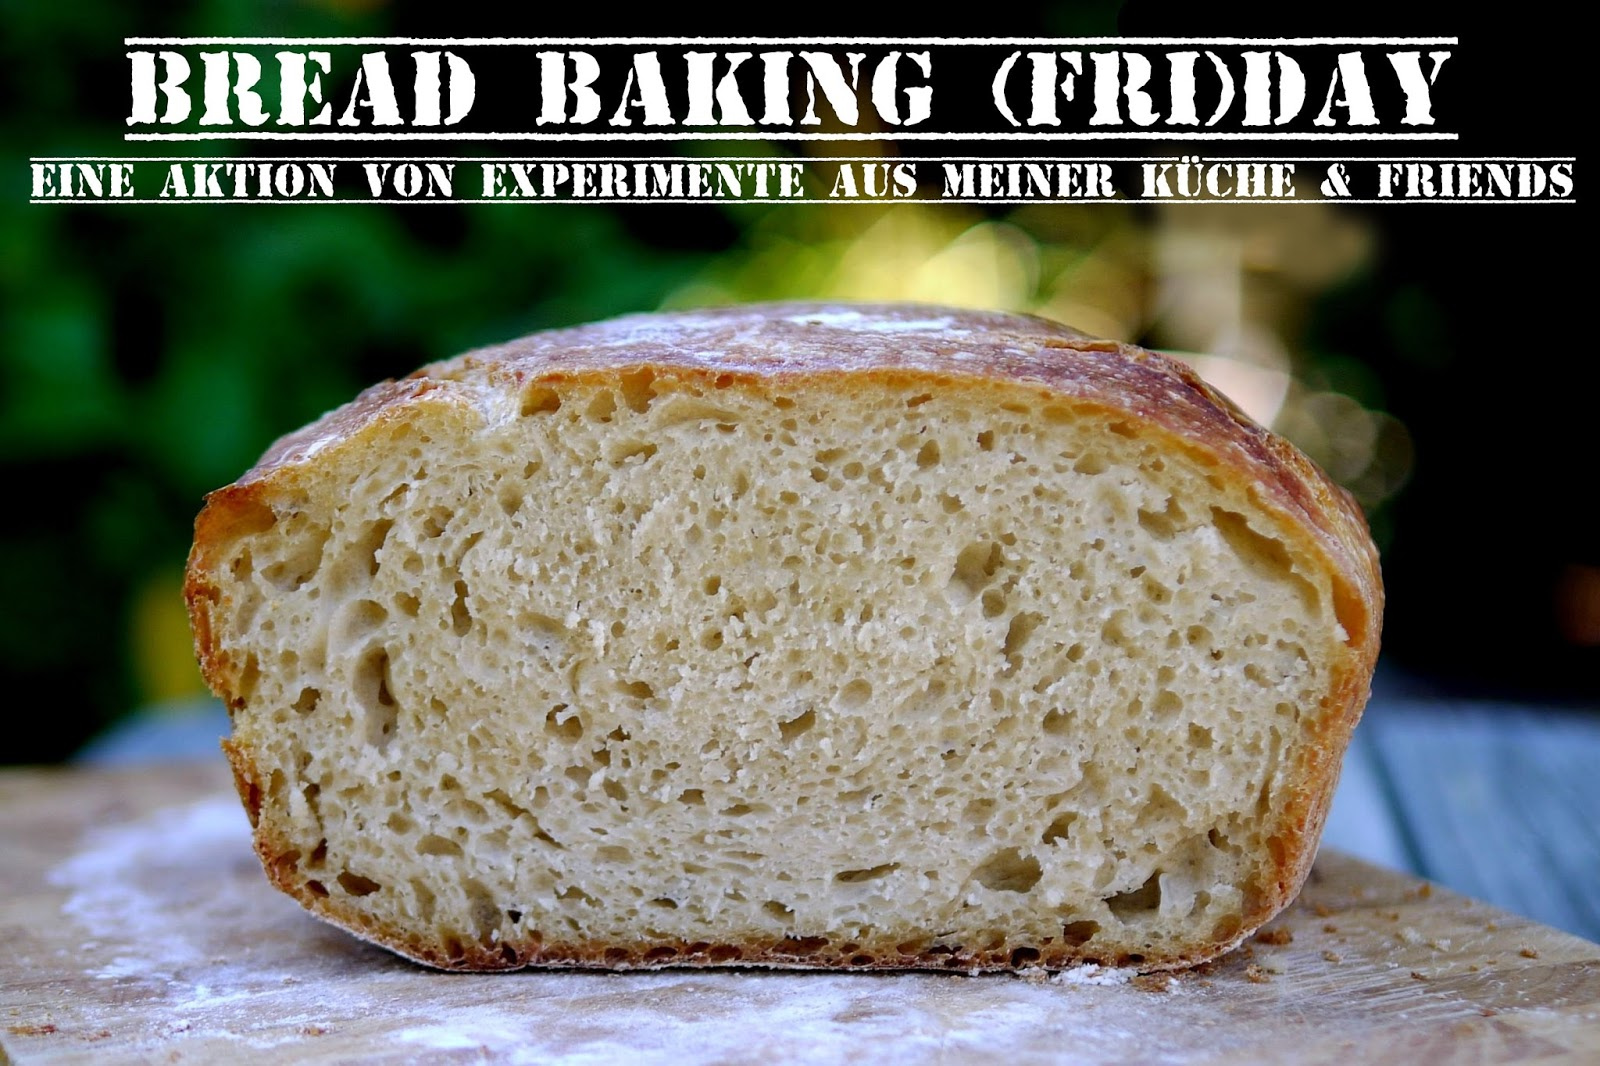 Experimente aus meiner Küche: Bread Baking (Fri)day